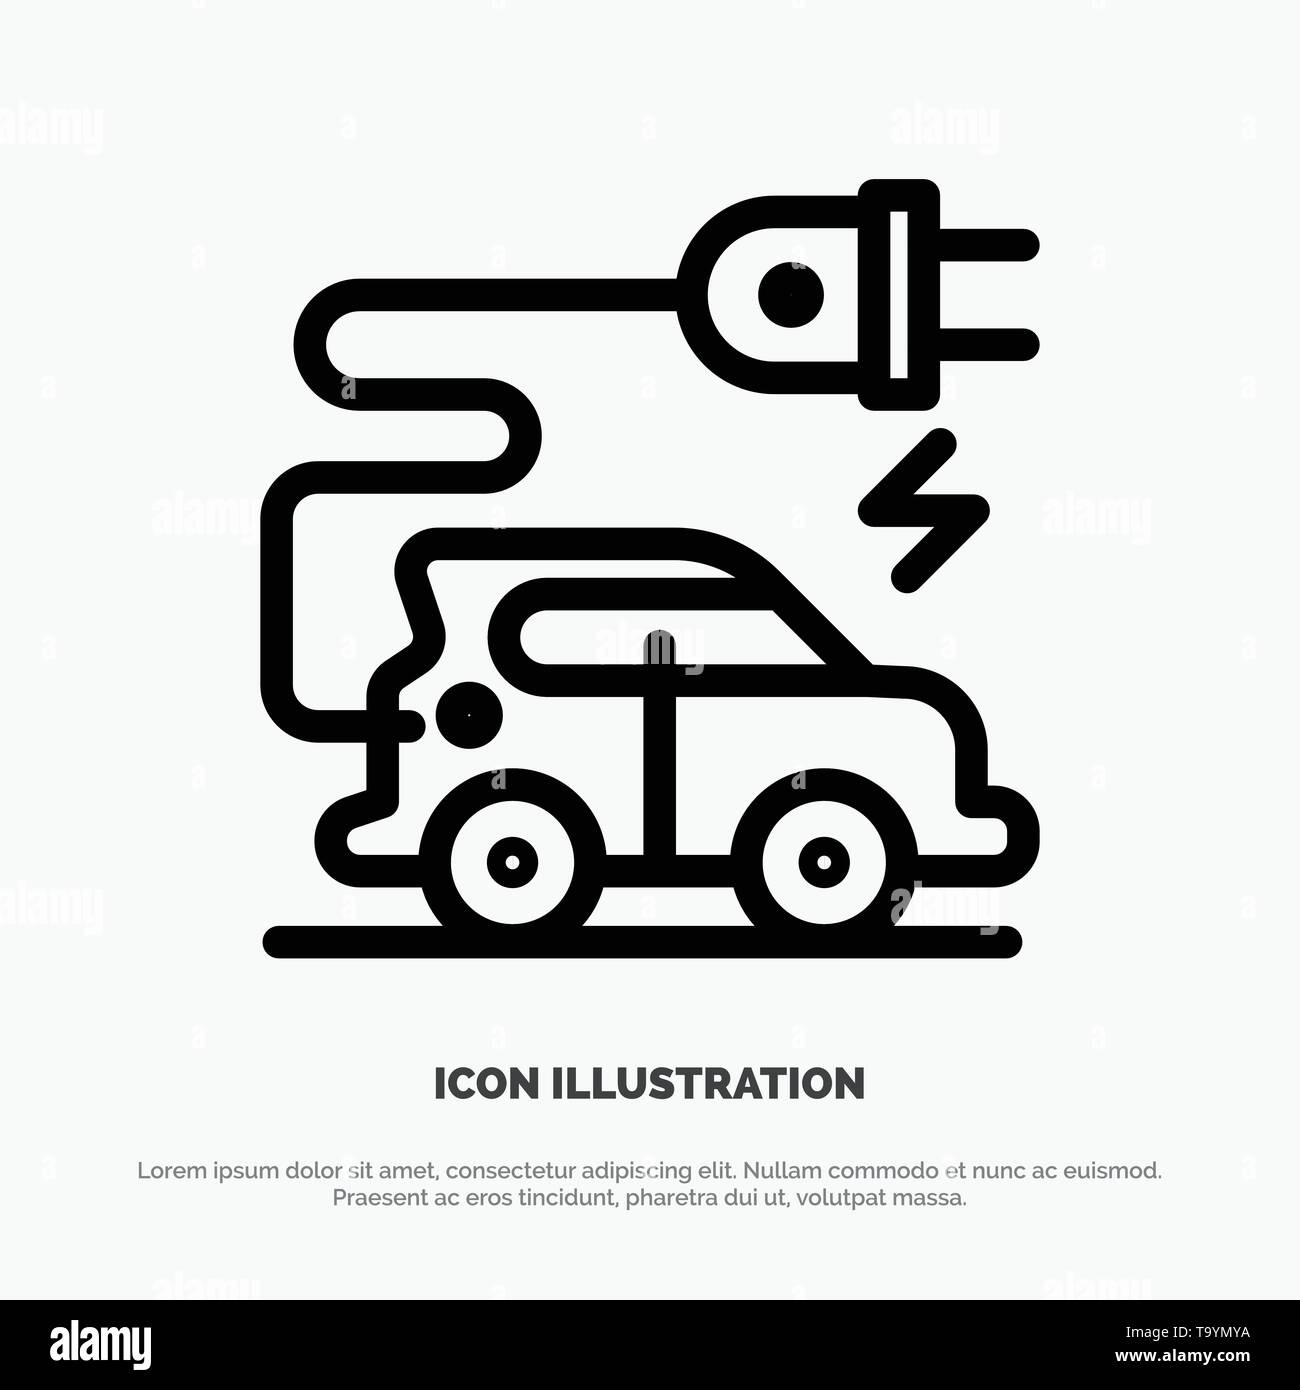 Automotive Technology, Electric Car, Electric Vehicle Line Icon Vector - Stock Image